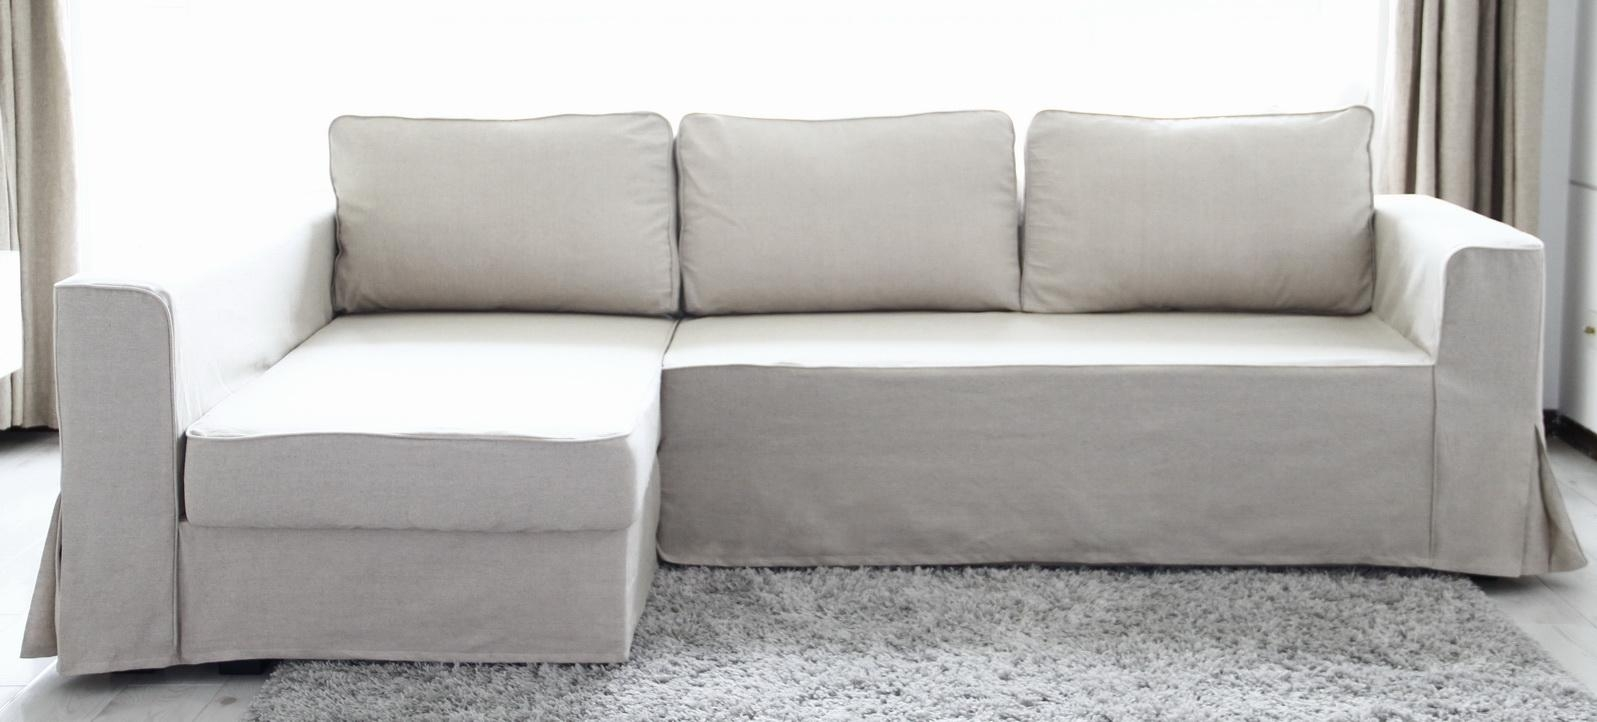 Loose Fit Linen Manstad Sofa Slipcovers Now Available For Ikea Chaise Lounge Sofa (Image 15 of 20)